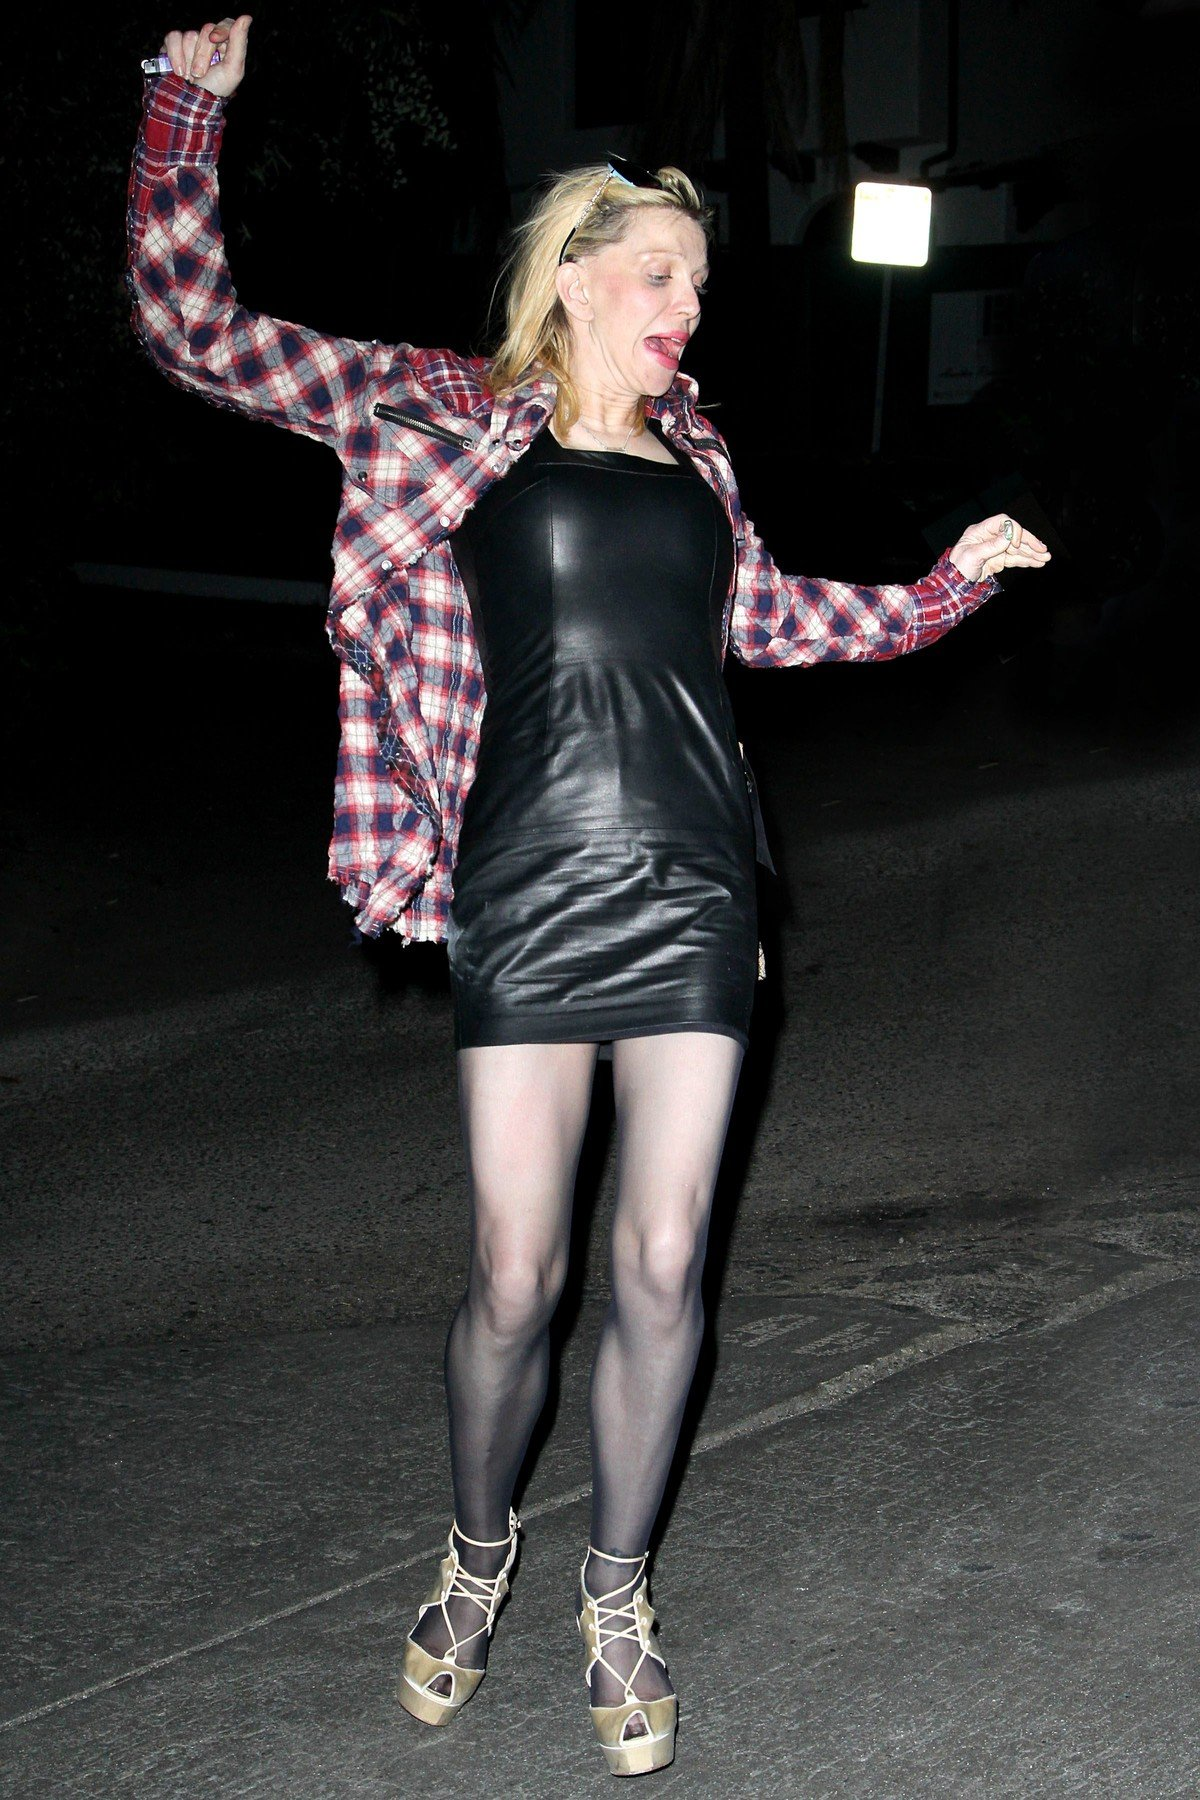 Courtney Love Takes a Spill Behind The Chateau Marmont .  January 13, 2012 Los Angeles, CA, Image: 114116449, License: Rights-managed, Restrictions: , Model Release: no, Credit line: Profimedia, NPG